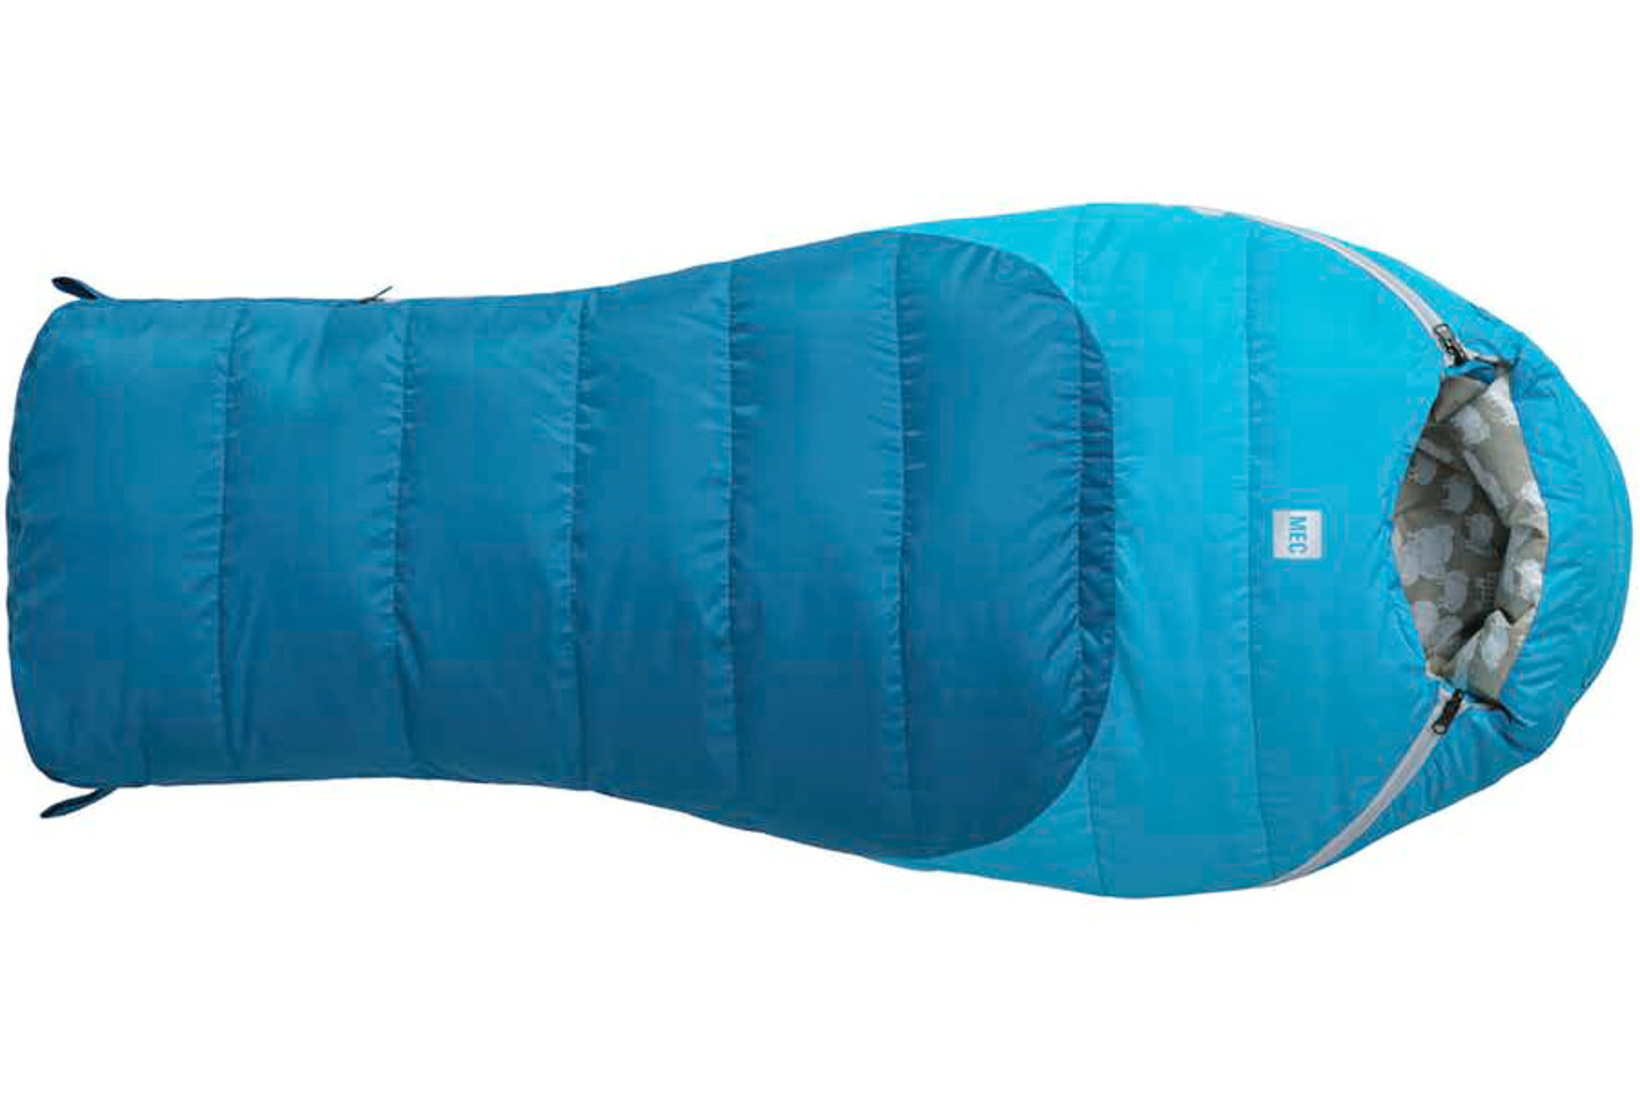 MEC Youth Sleeping Bag